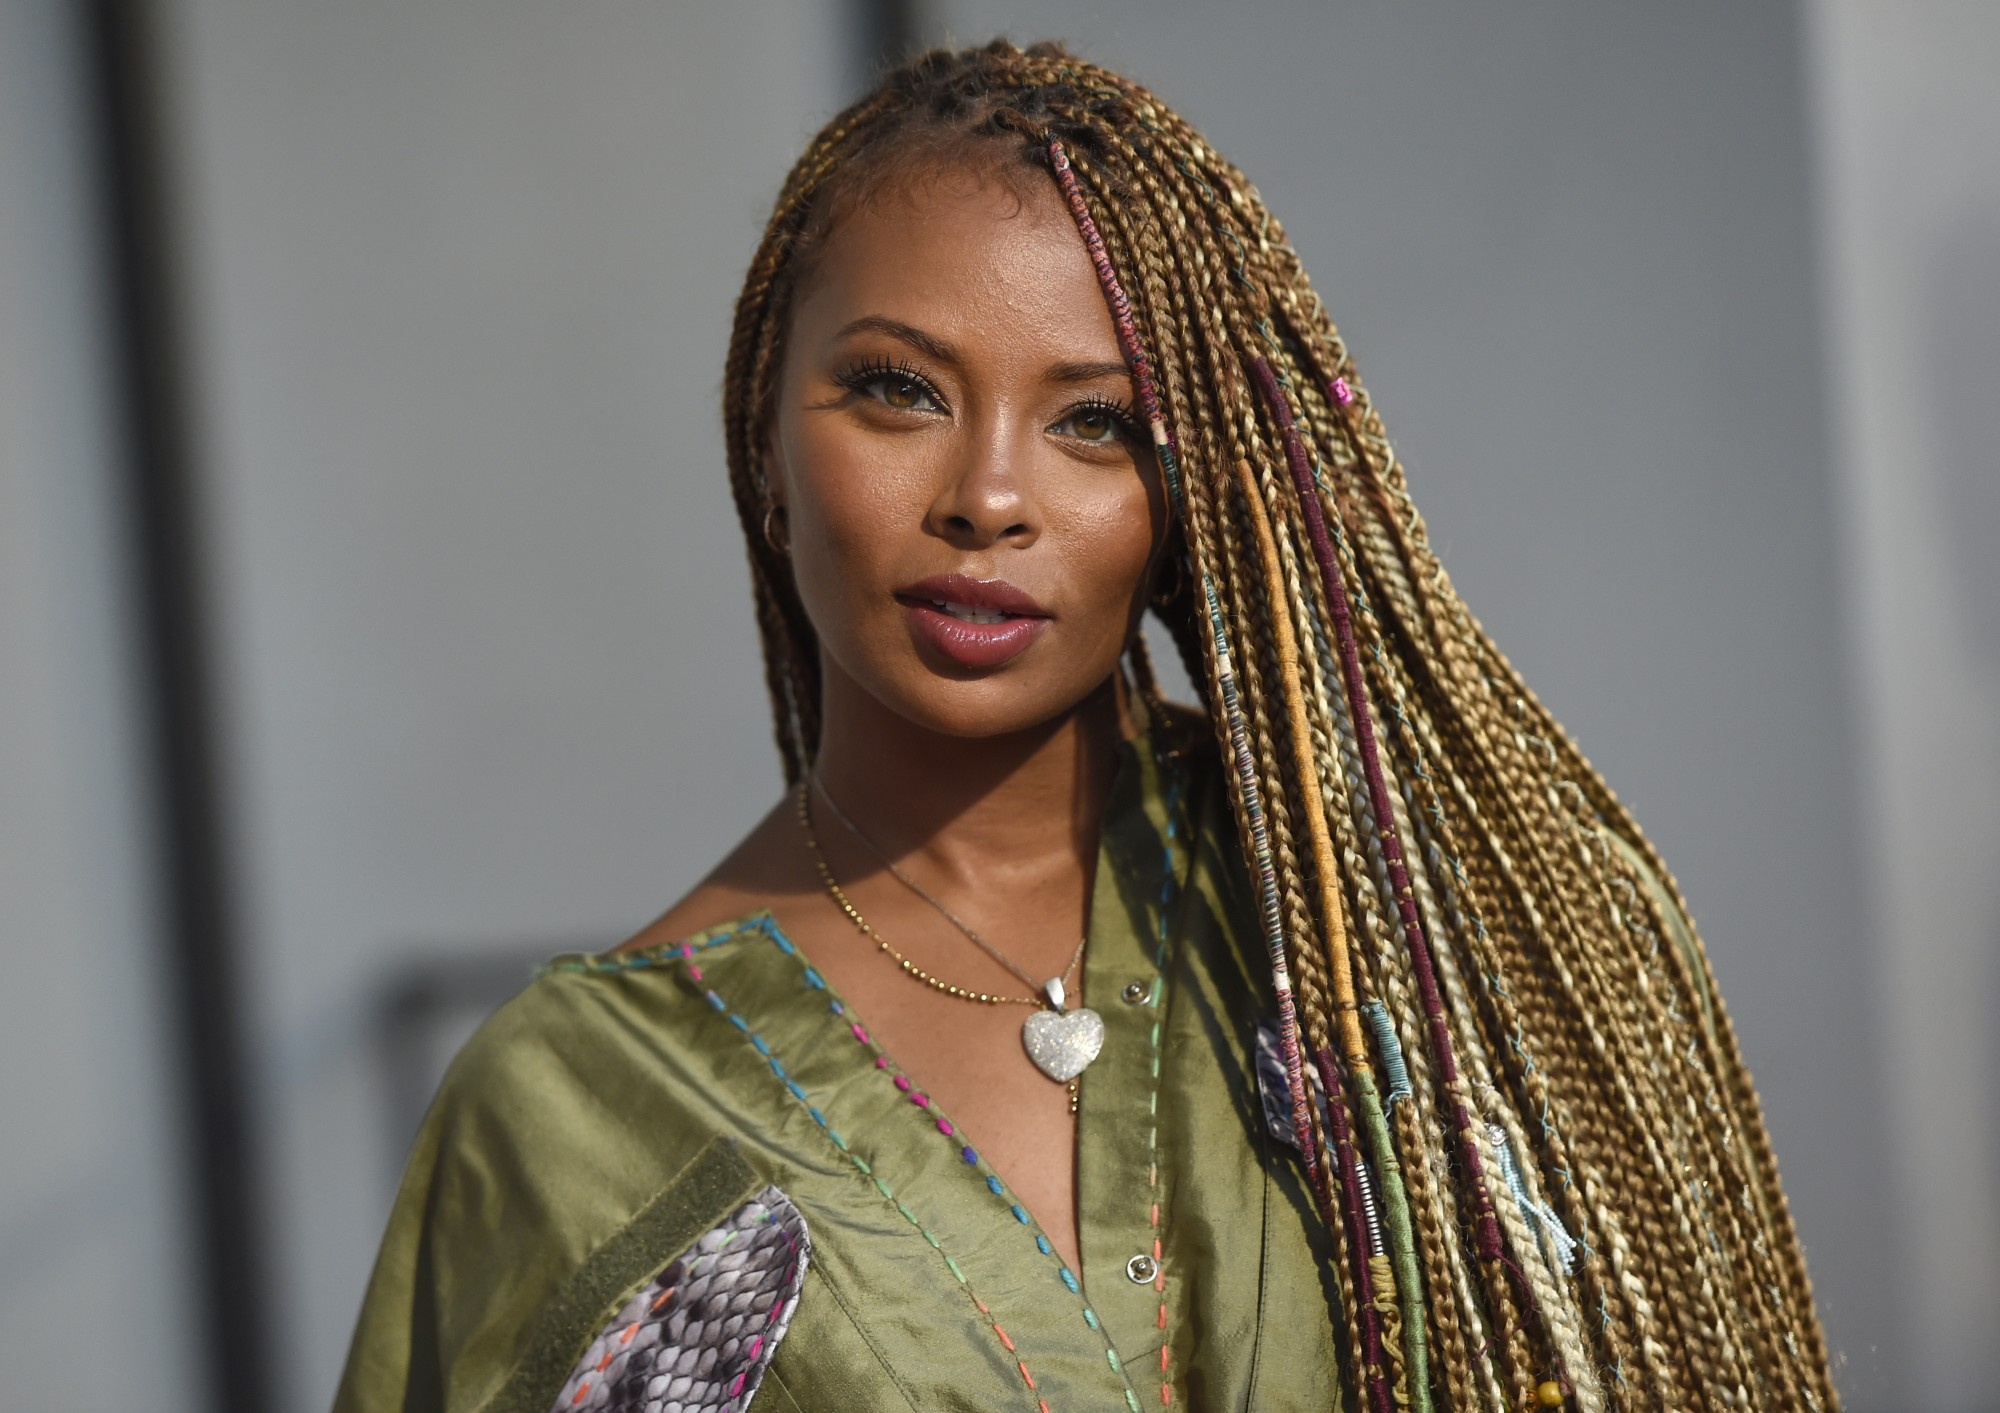 Eva Marcille Shares A Video In Which She's Dancing With Gorgeous Marley Rae - See It Here